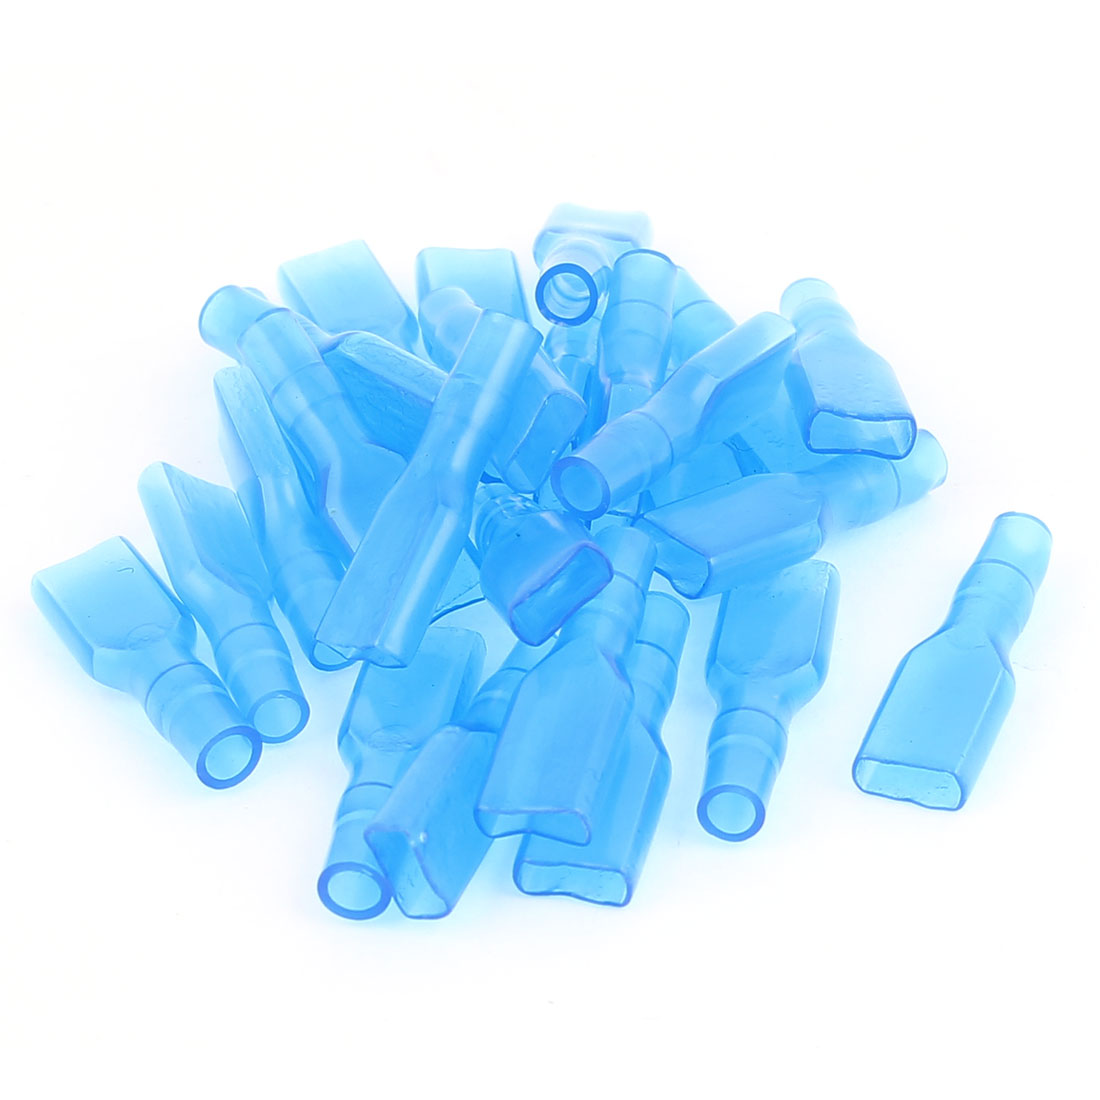 4.8mm Female Spade Wire Terminal Connector Insulated Cap Sleeve Cover Blue 25Pcs